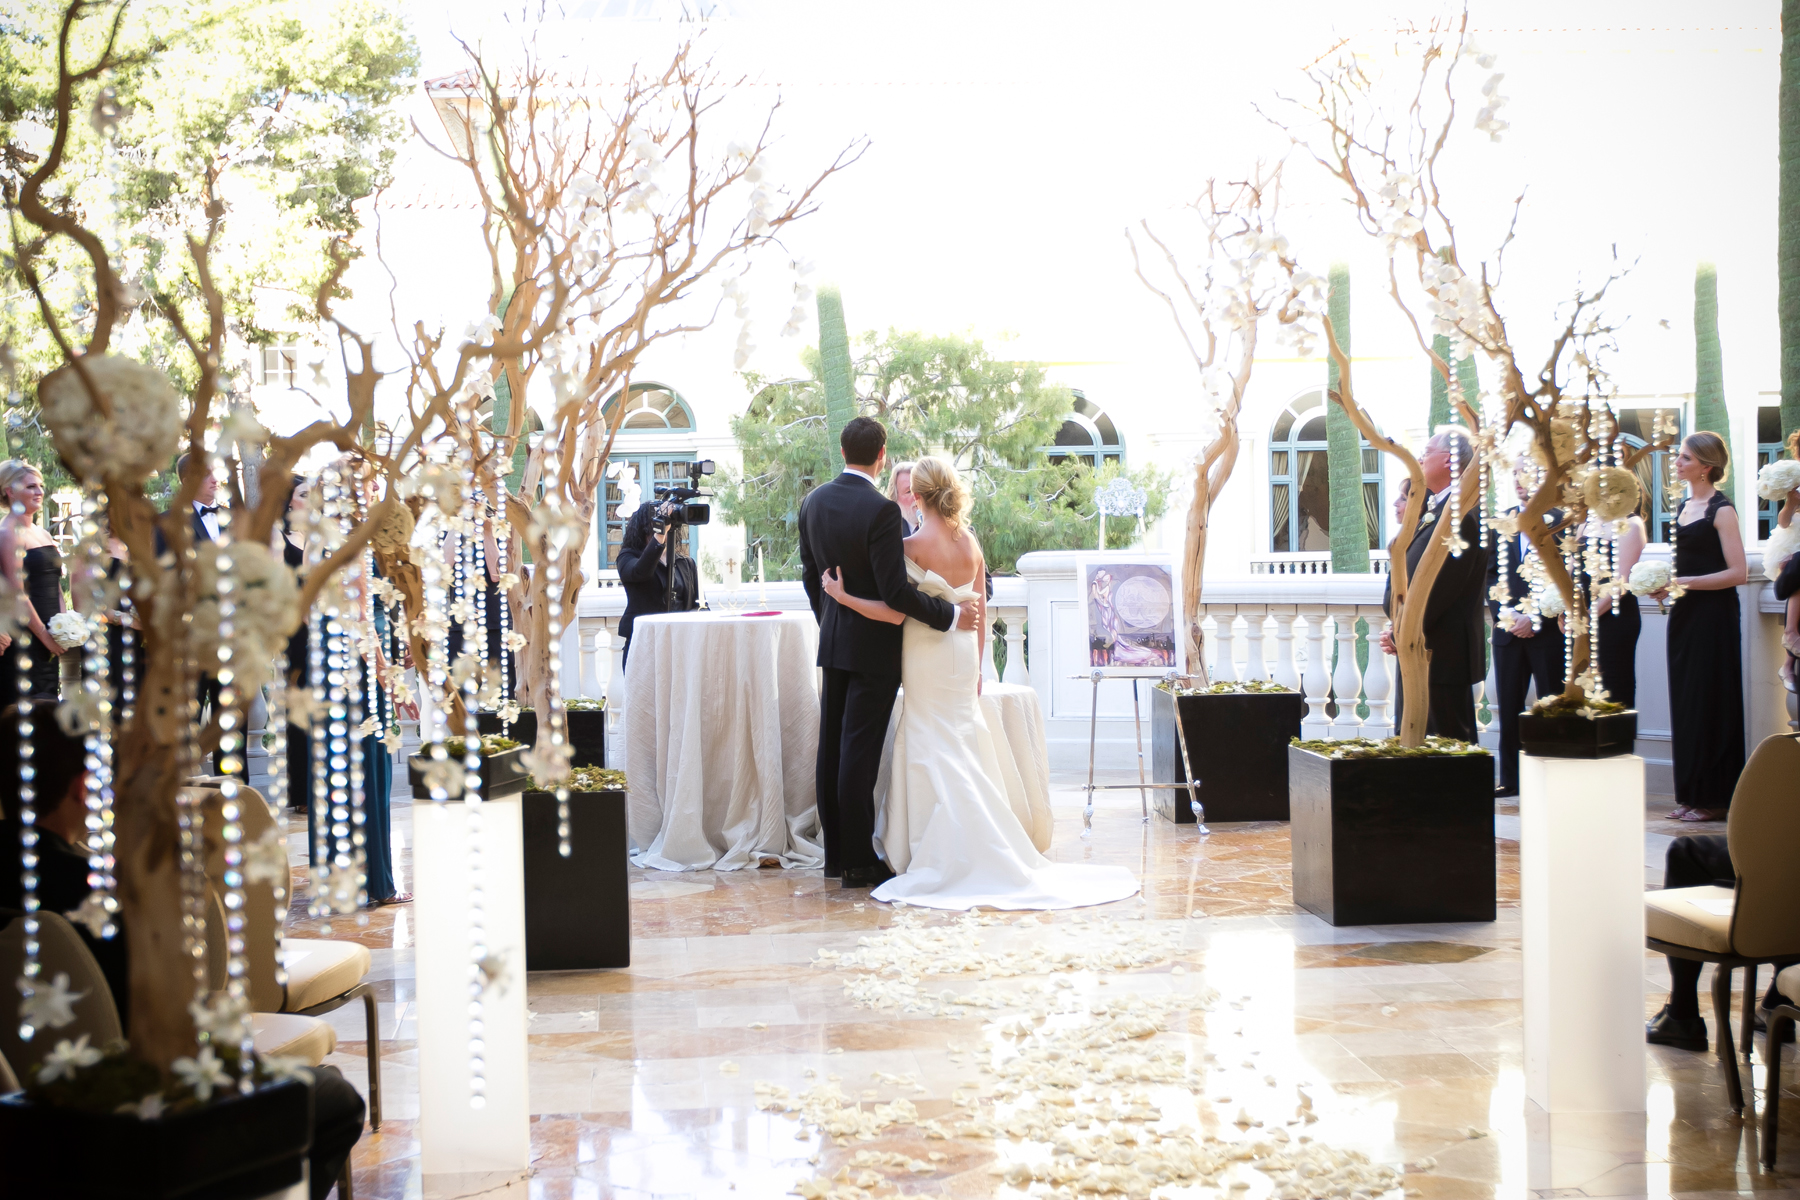 The top of the chuppah was made of fabric so sheer and soft, it nearly disappeared in the sunlight.  Wedding Venue: Bellagio Las Vegas.  Location: The Grand Patio. Photo by www.ronmiller.com . Las Vegas Wedding Planner: Andrea Eppolito Events .